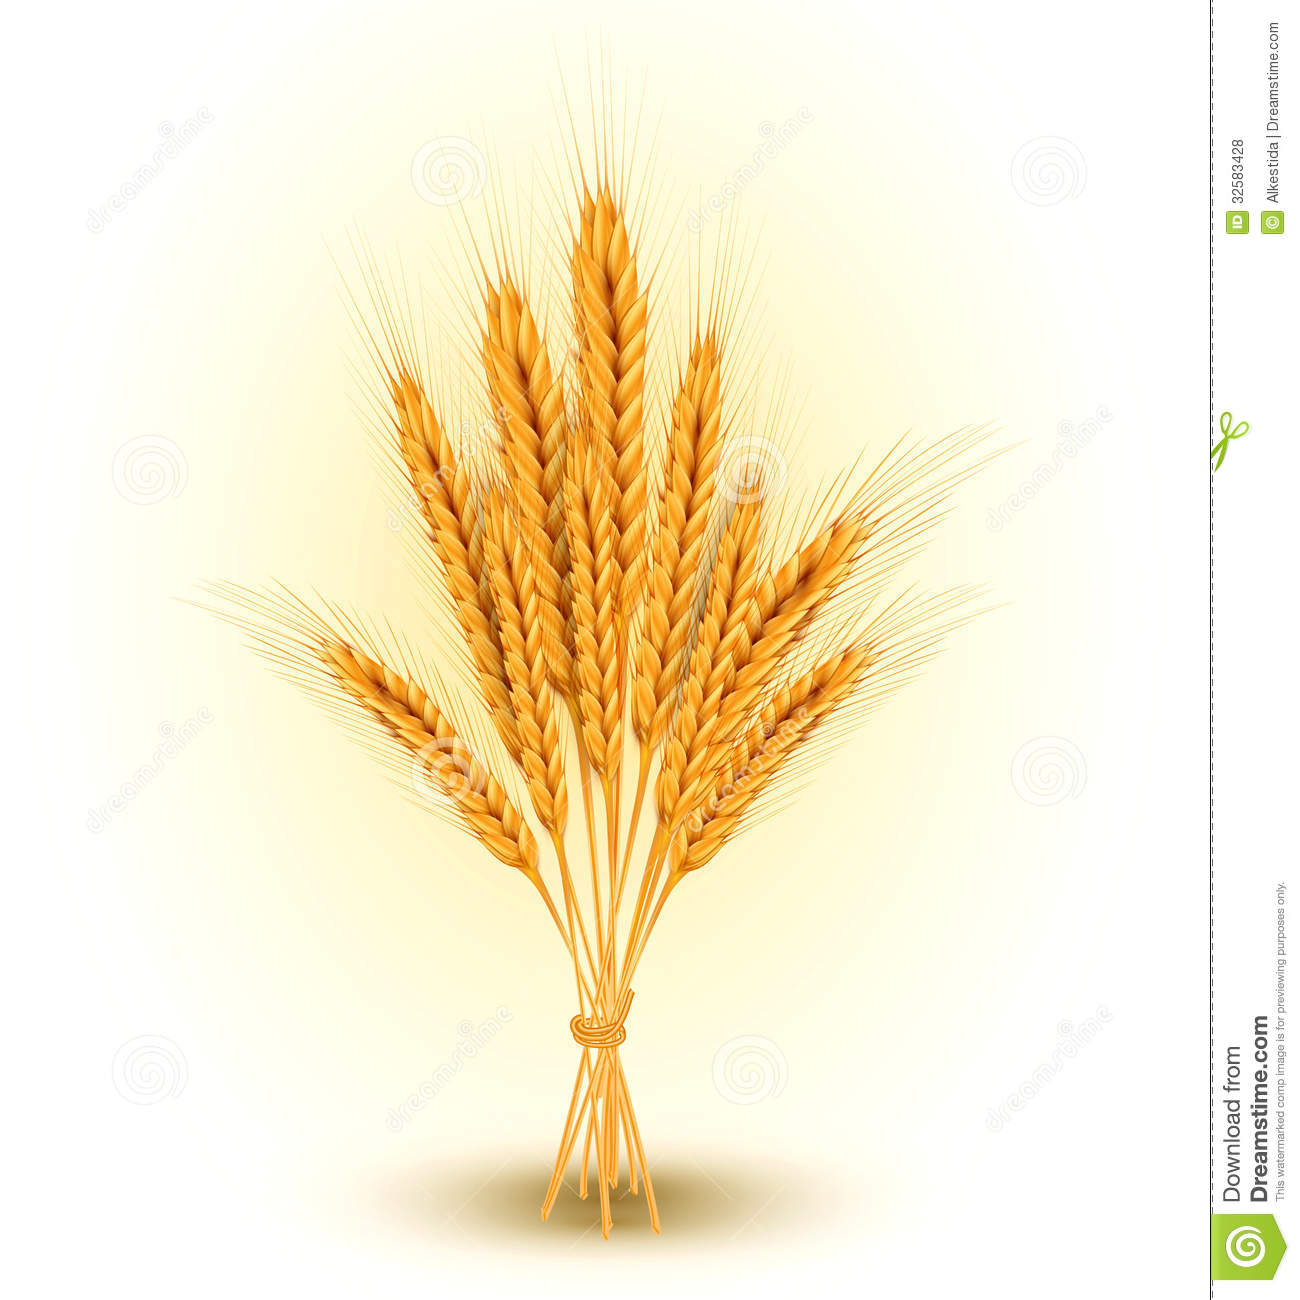 Vector Background With A Sheaf Of Golden Wheat Ear Royalty Free Stock